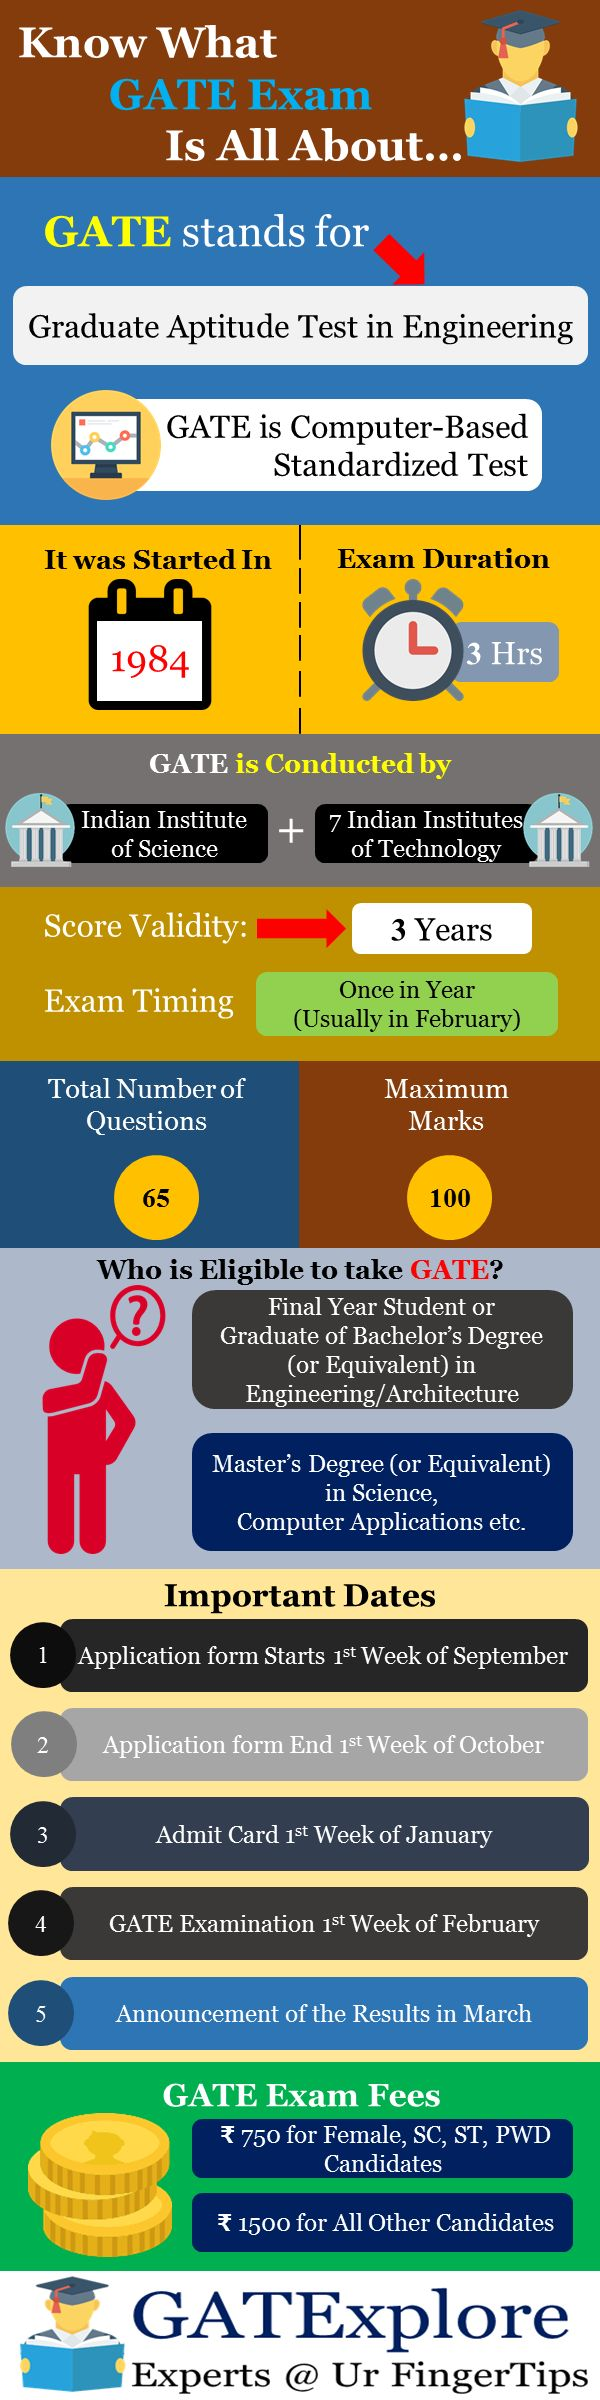 Know What GATE Exam 2019 All About  GATE 2019